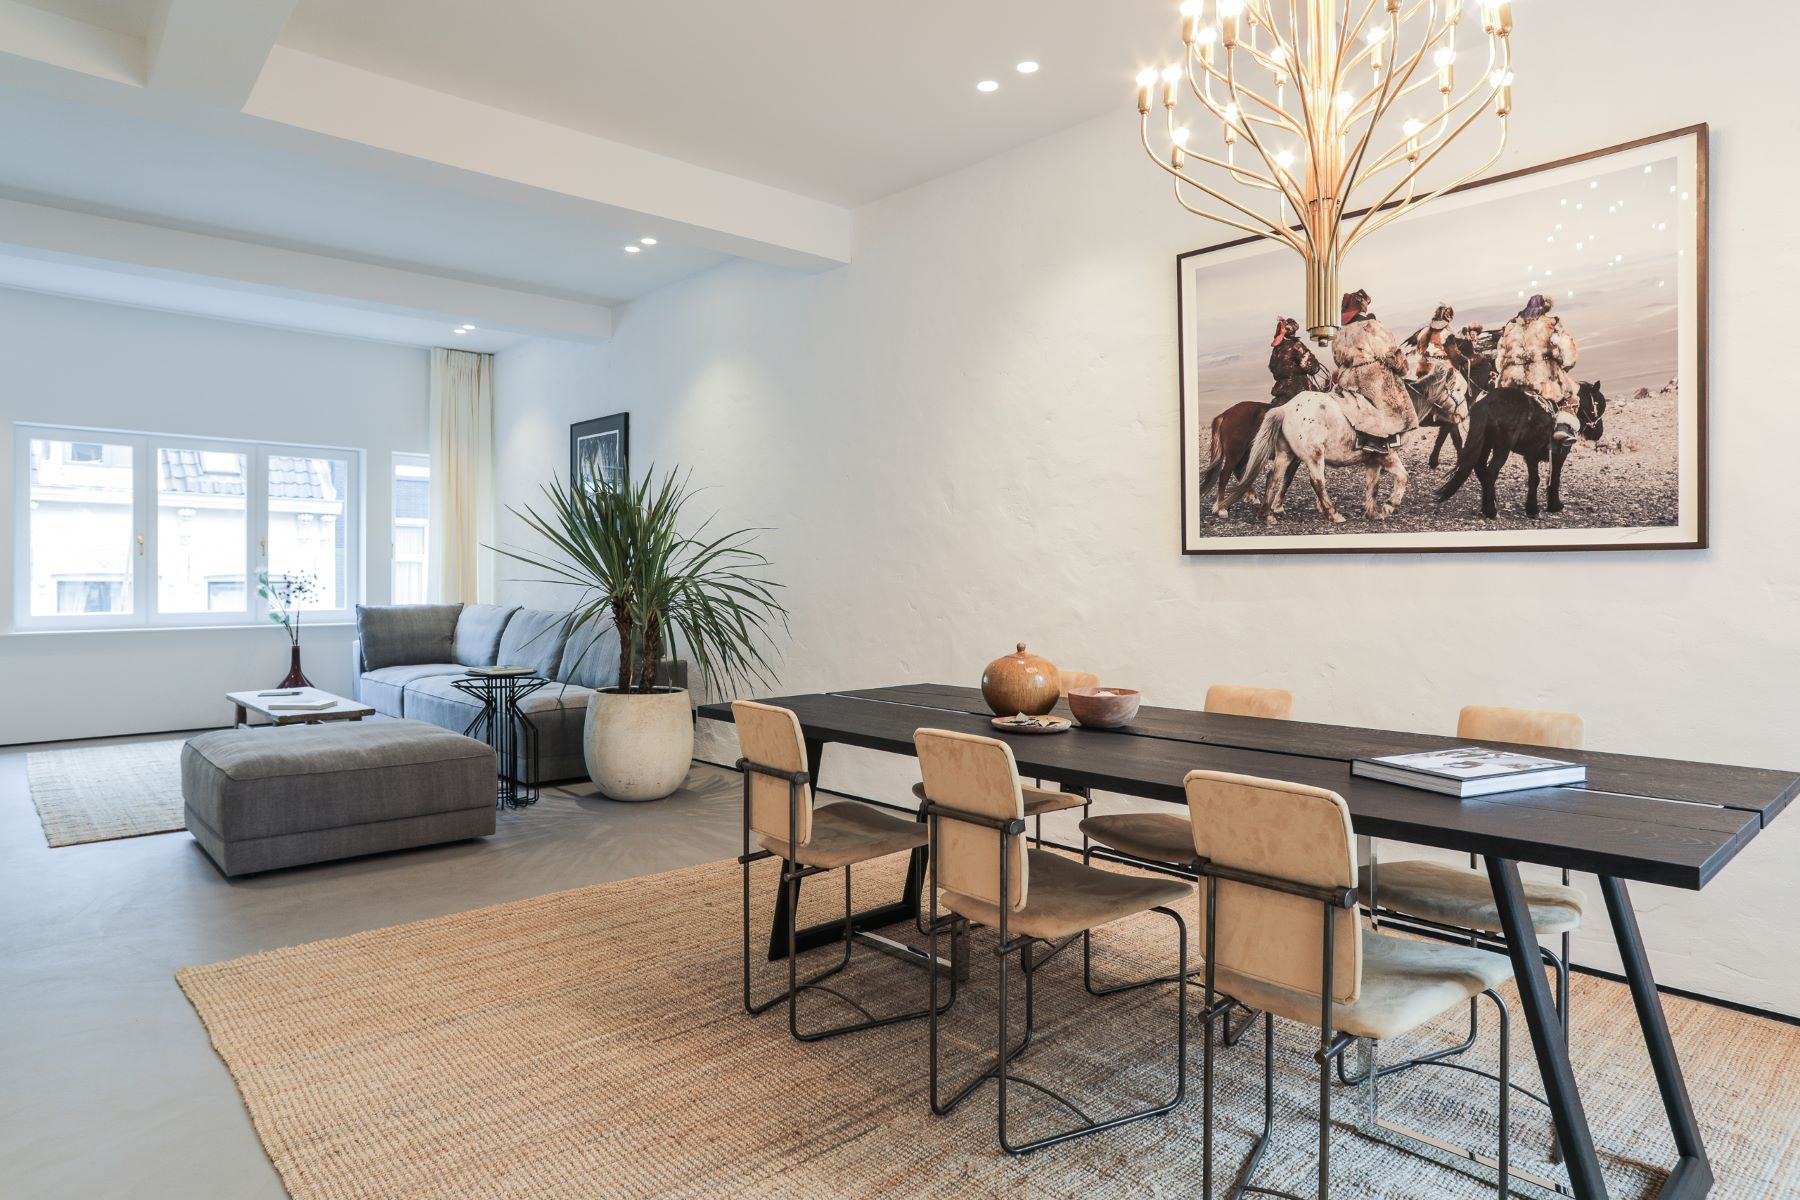 Apartment for Sale at Modern city life apartment in Amsterdam Kerkstraat 60D, Amsterdam, North Holland, 1017 GM Netherlands